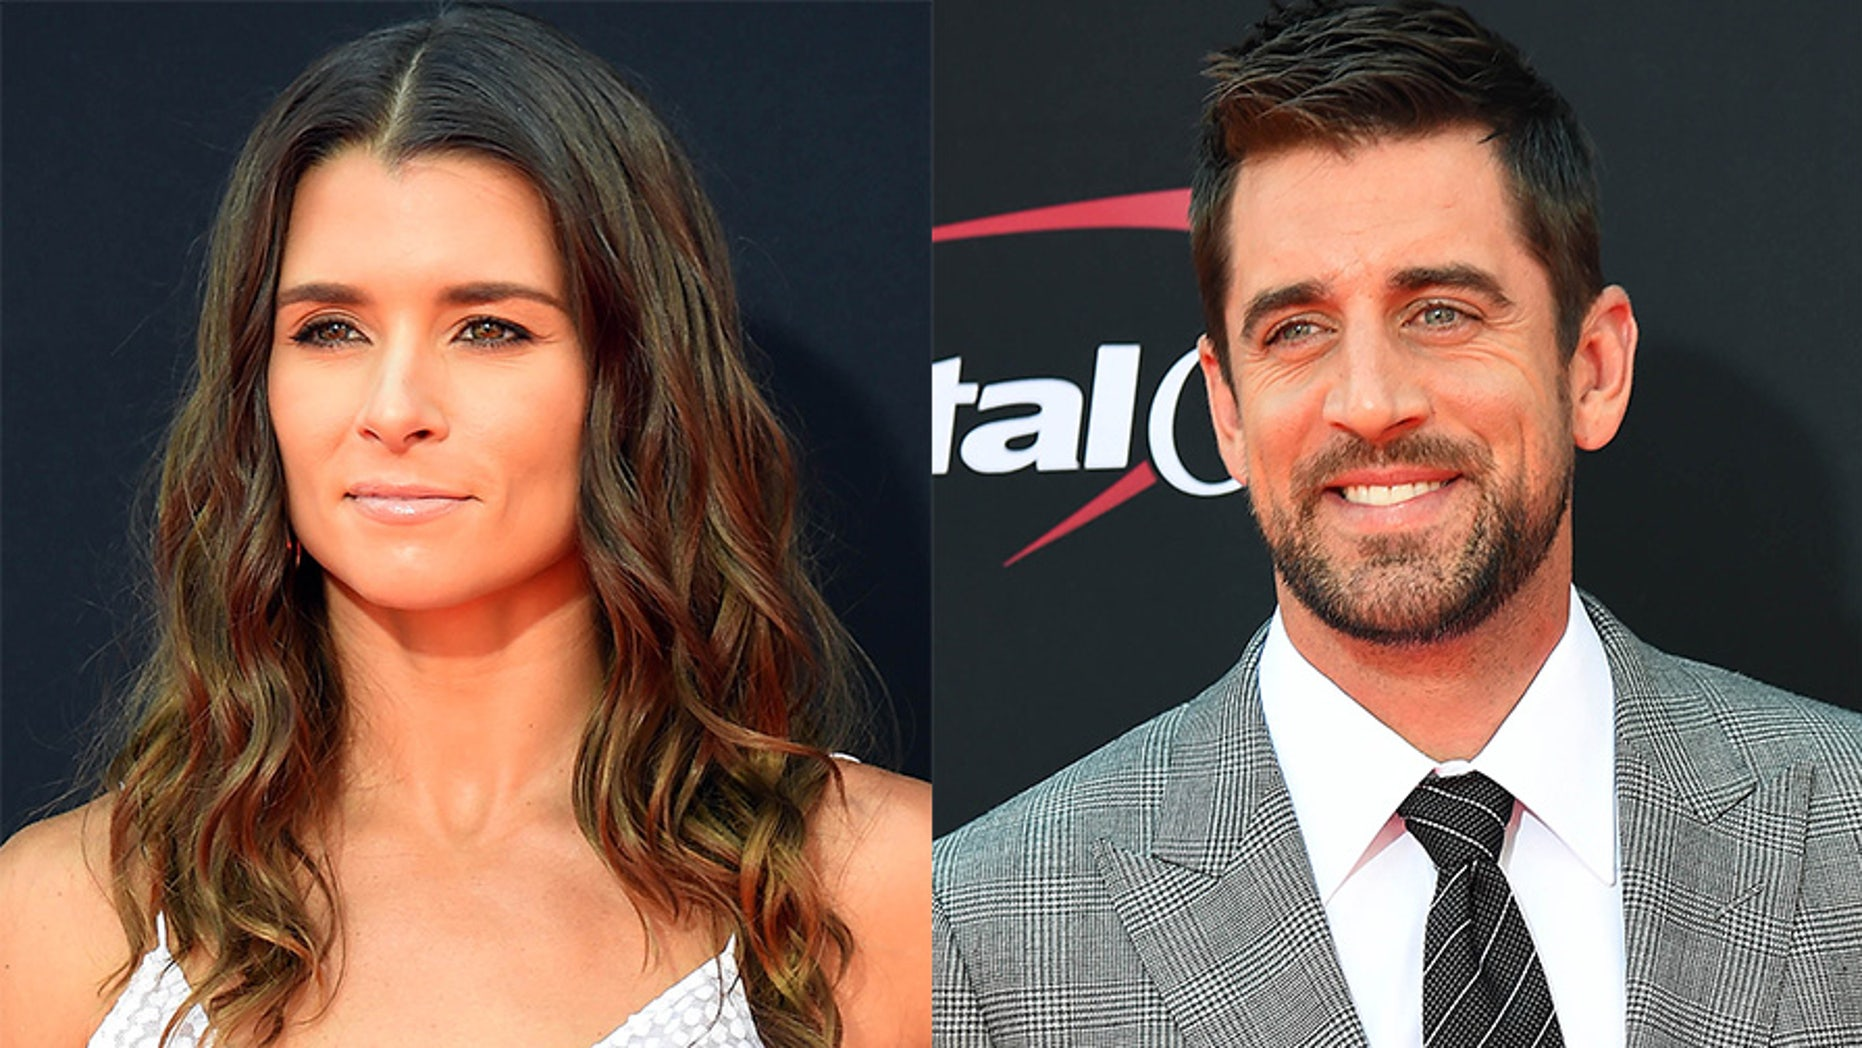 A rep for Danica Patrick confirmed to Fox News that the race car driver is dating Green Bay Packers quarterback Aaron Rodgers.